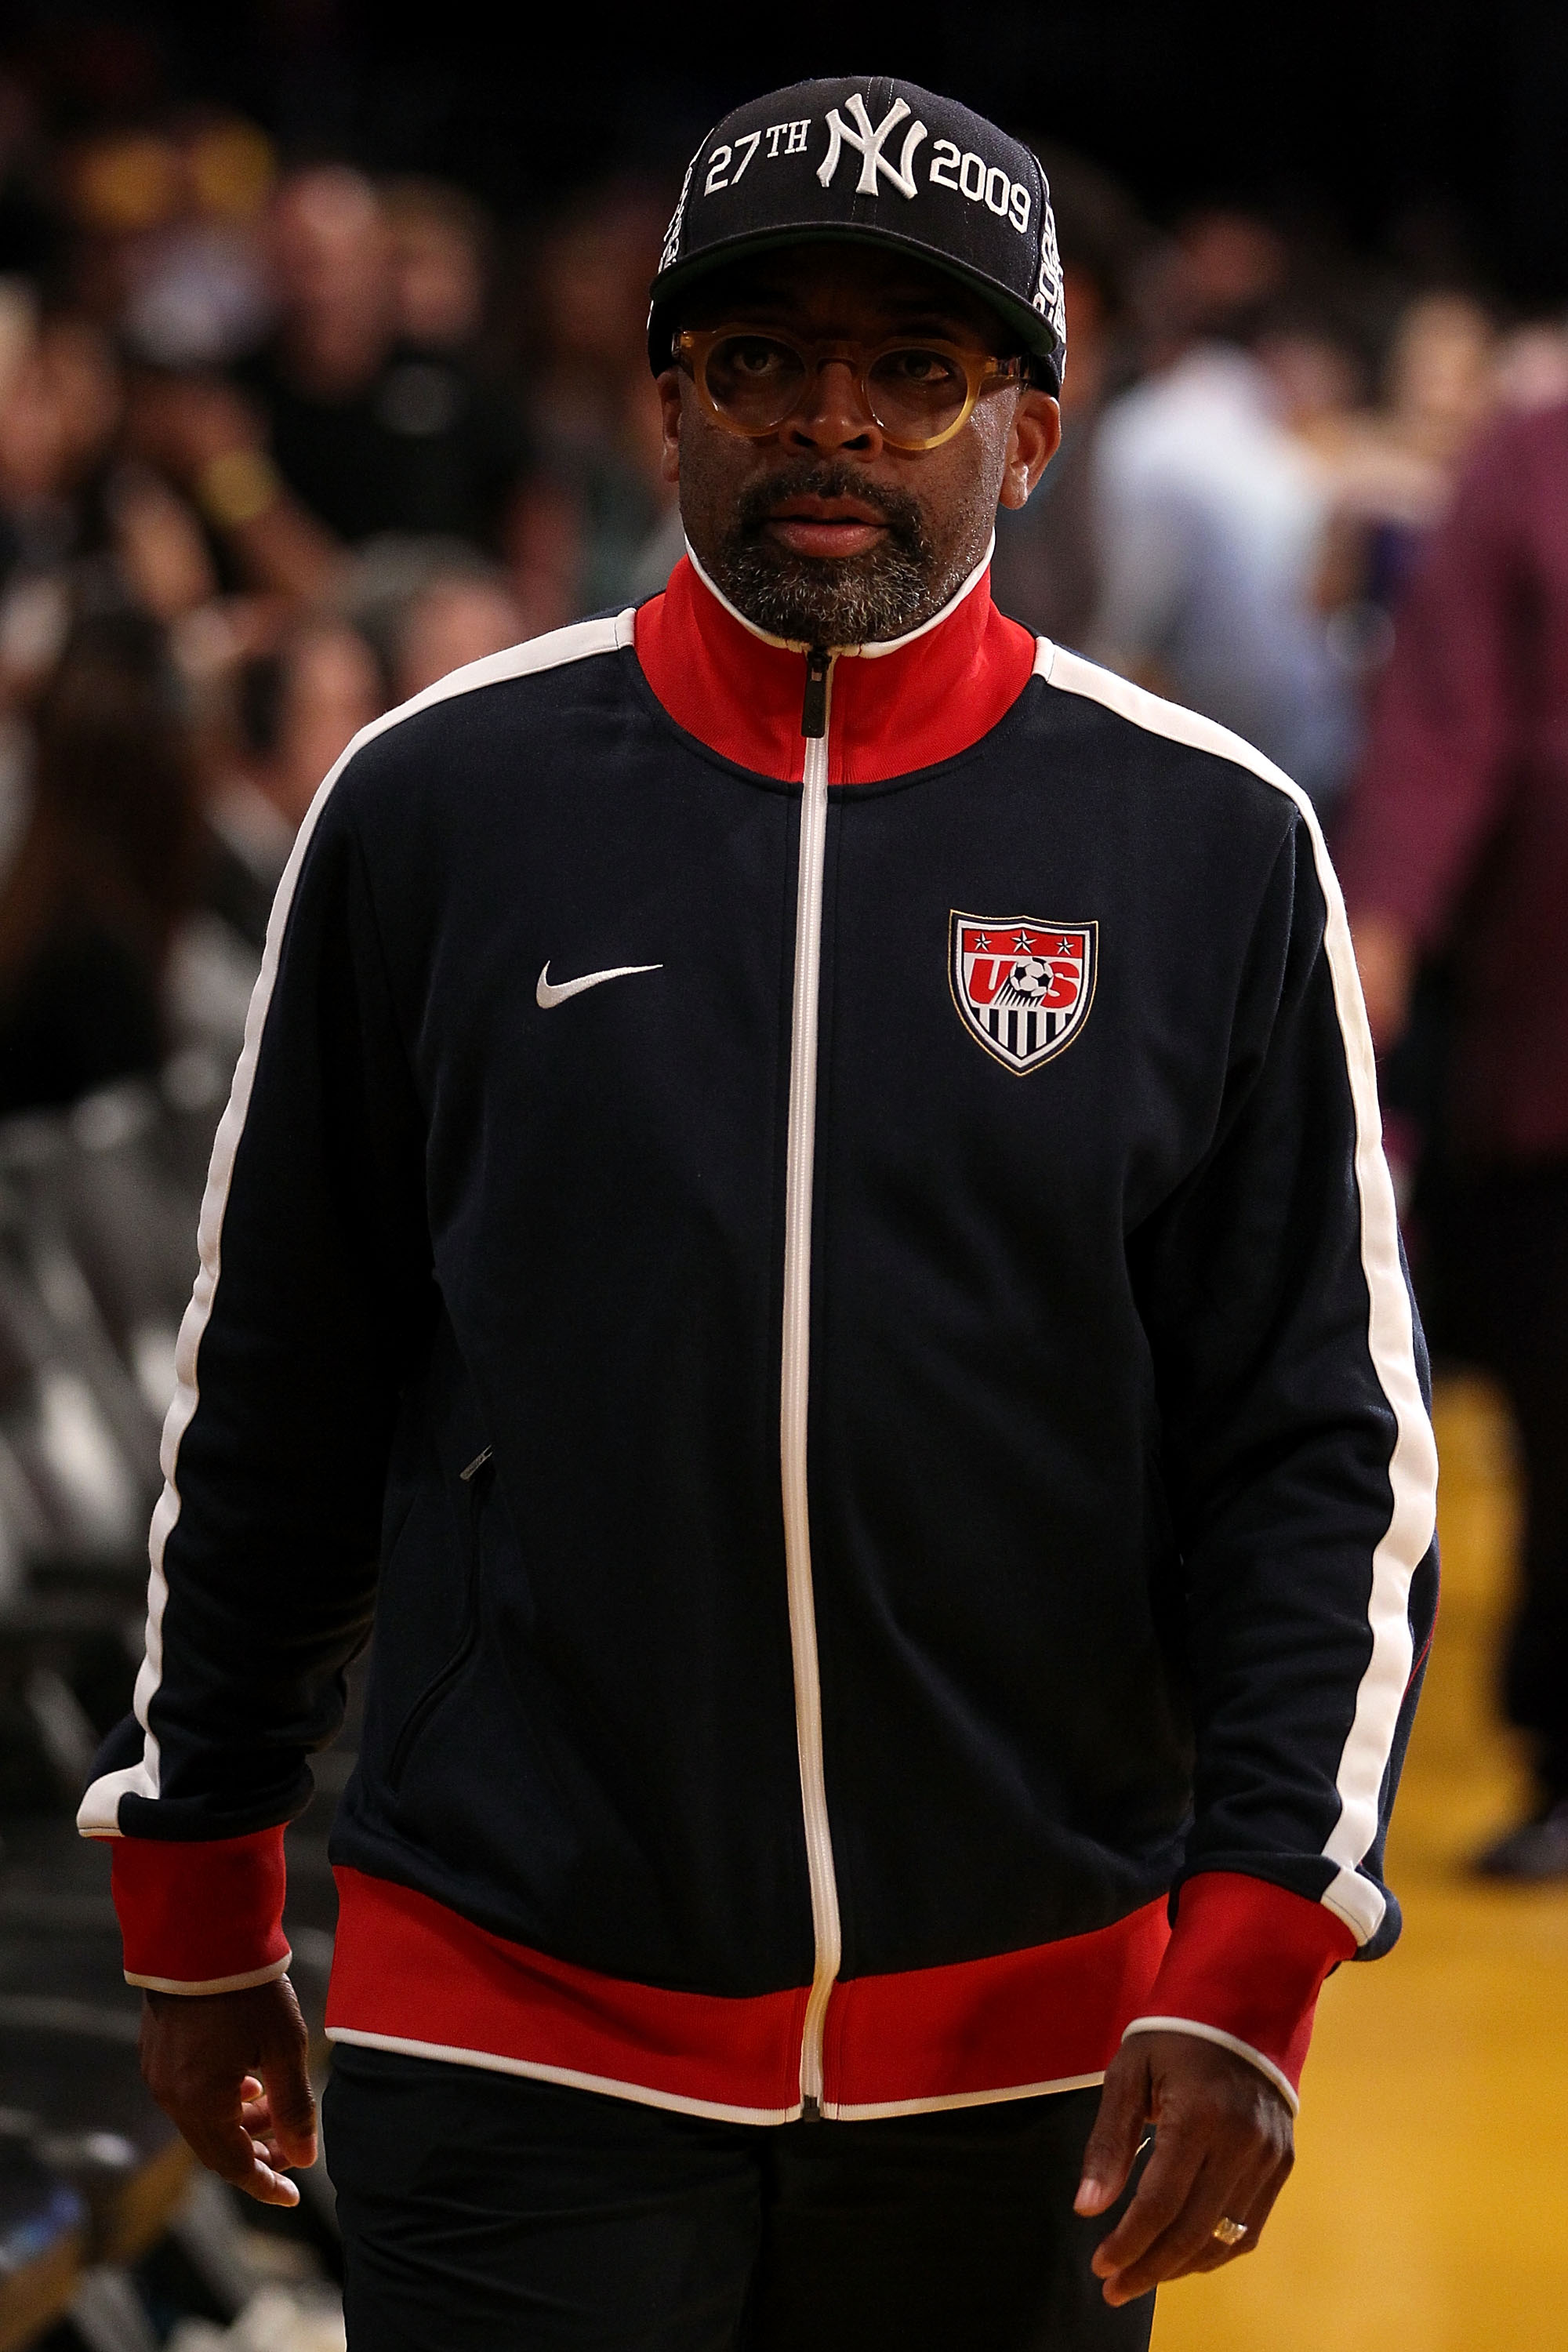 LOS ANGELES, CA - JUNE 15:  Director Spike Lee walks along the sideline in Game Six of the 2010 NBA Finals between the Boston Celtics and the Los Angeles Lakers at Staples Center on June 15, 2010 in Los Angeles, California.  NOTE TO USER: User expressly a